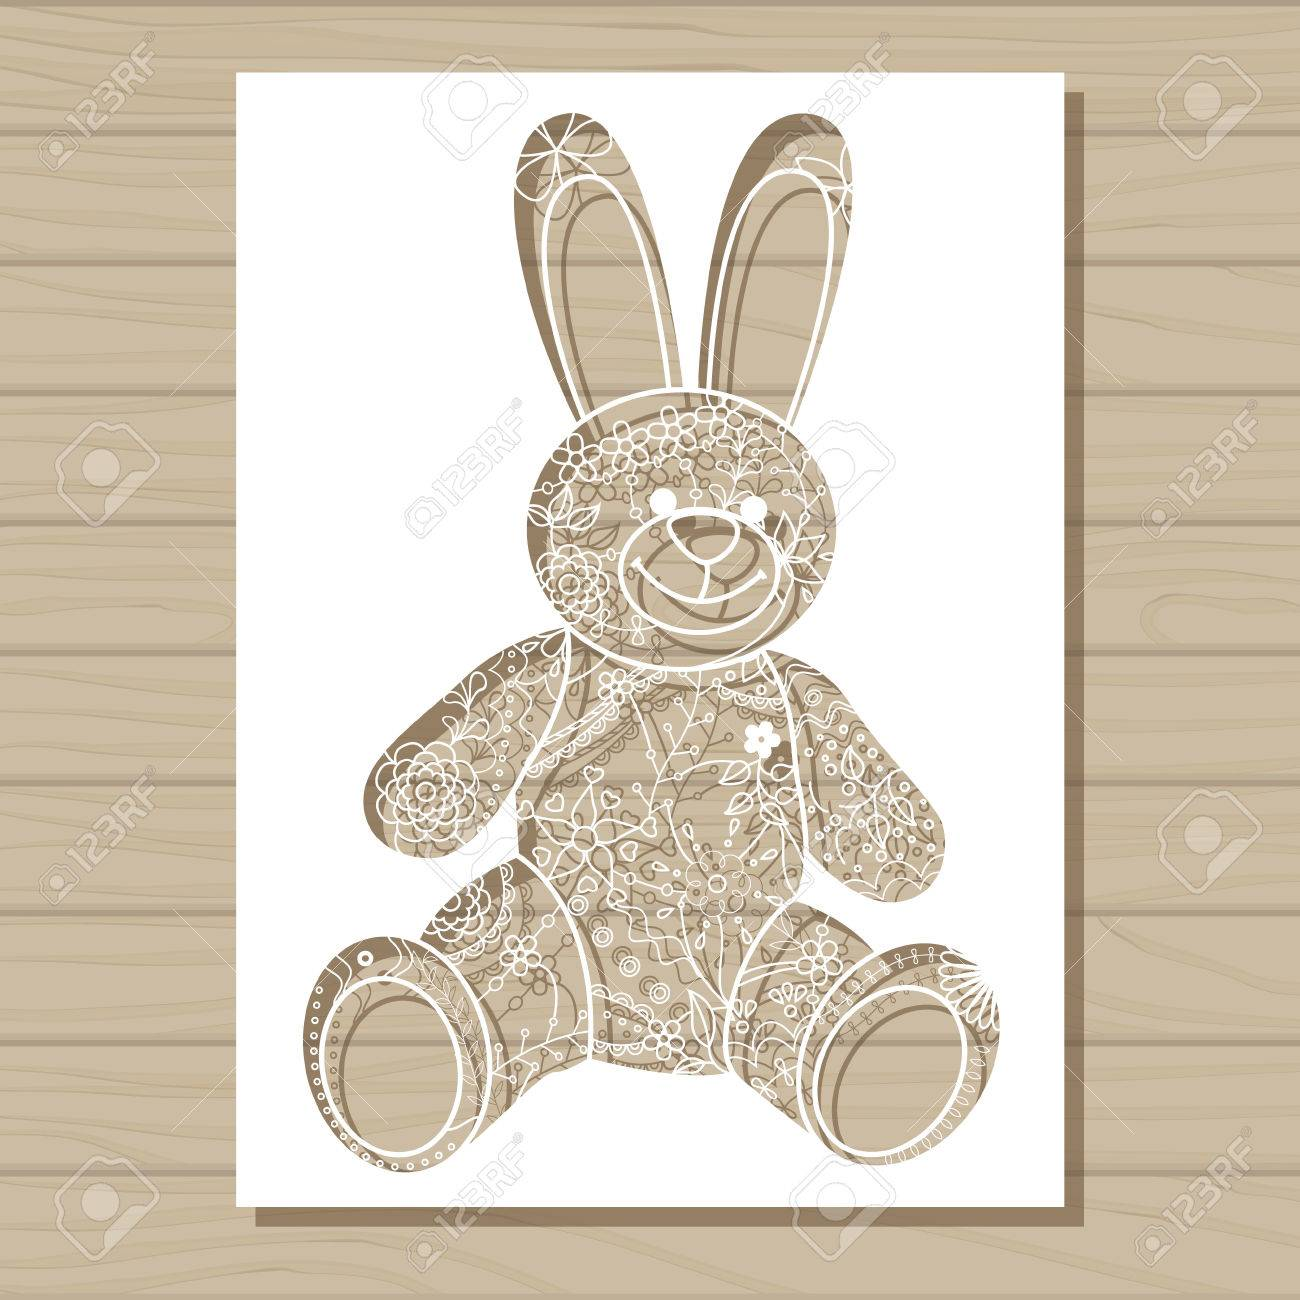 vector stencil template of bunny on wooden background royalty free